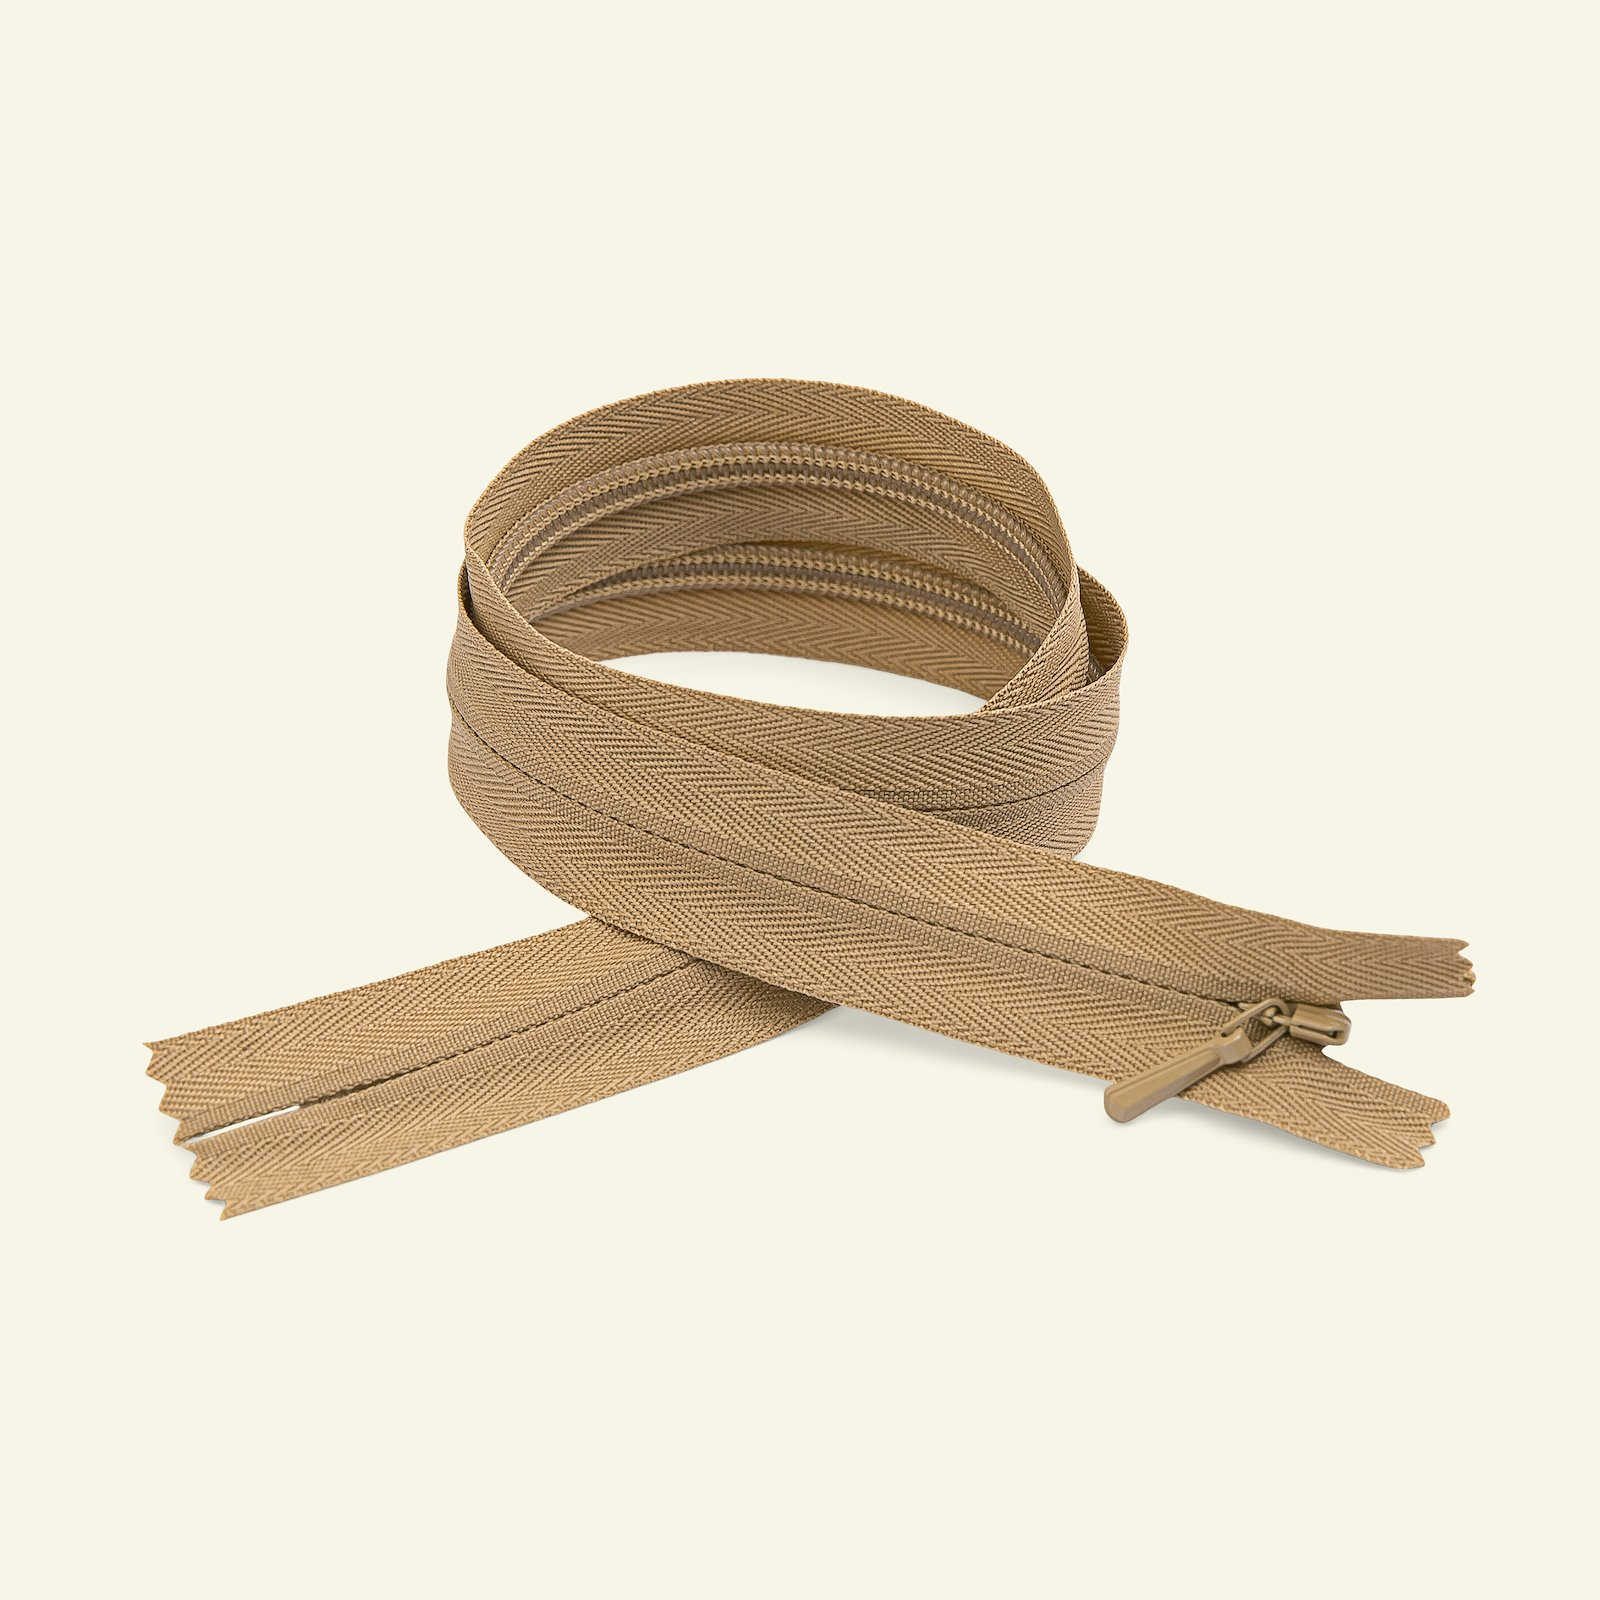 YKK zip 4mm invisible closed 35cm sand x40738_pack